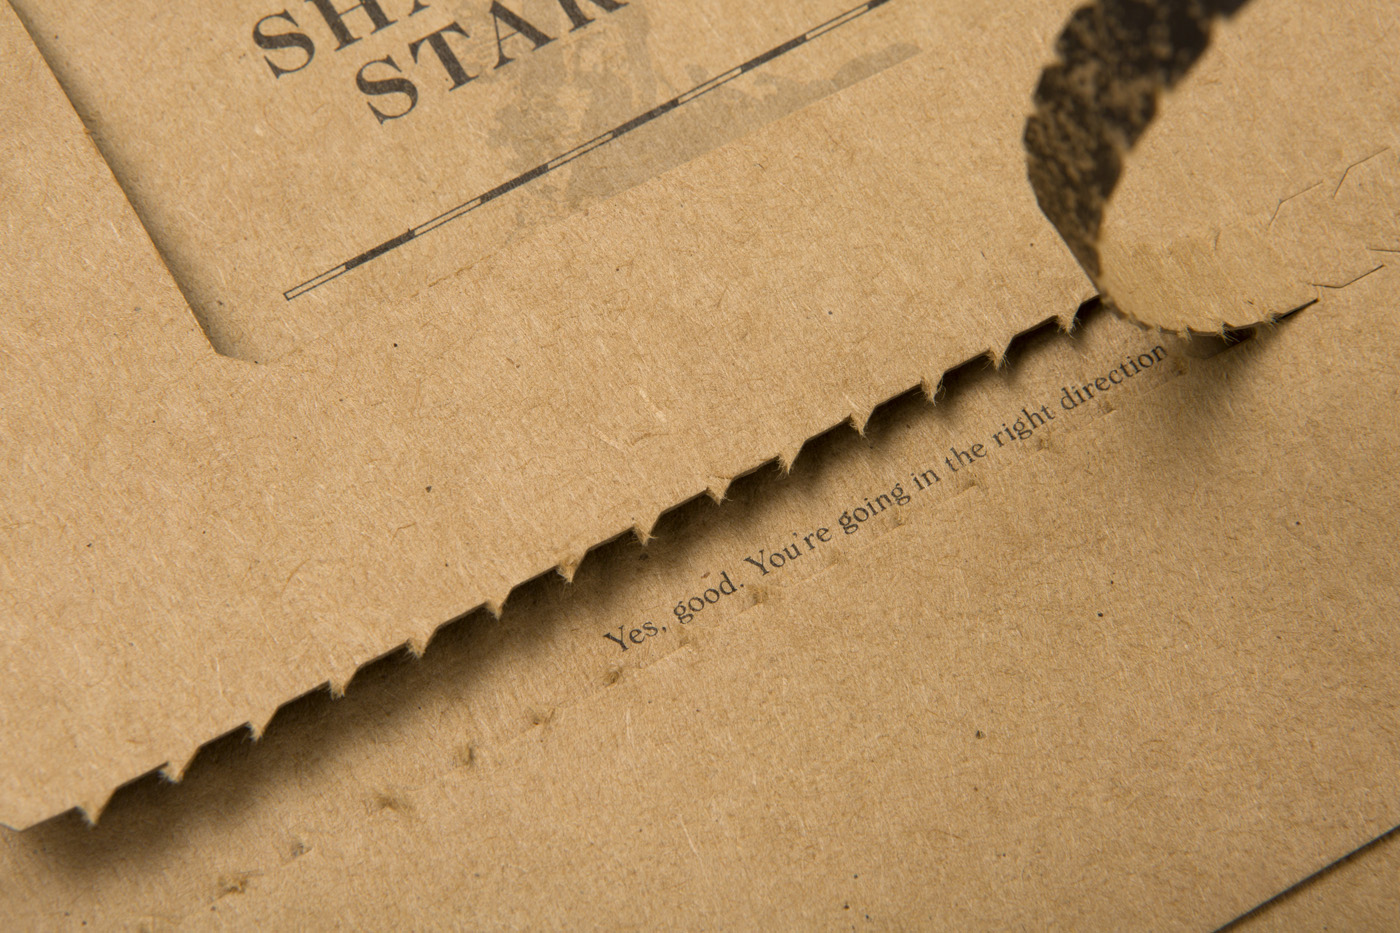 Custom packaging for Shantanu Starick on Buffalo Board 4